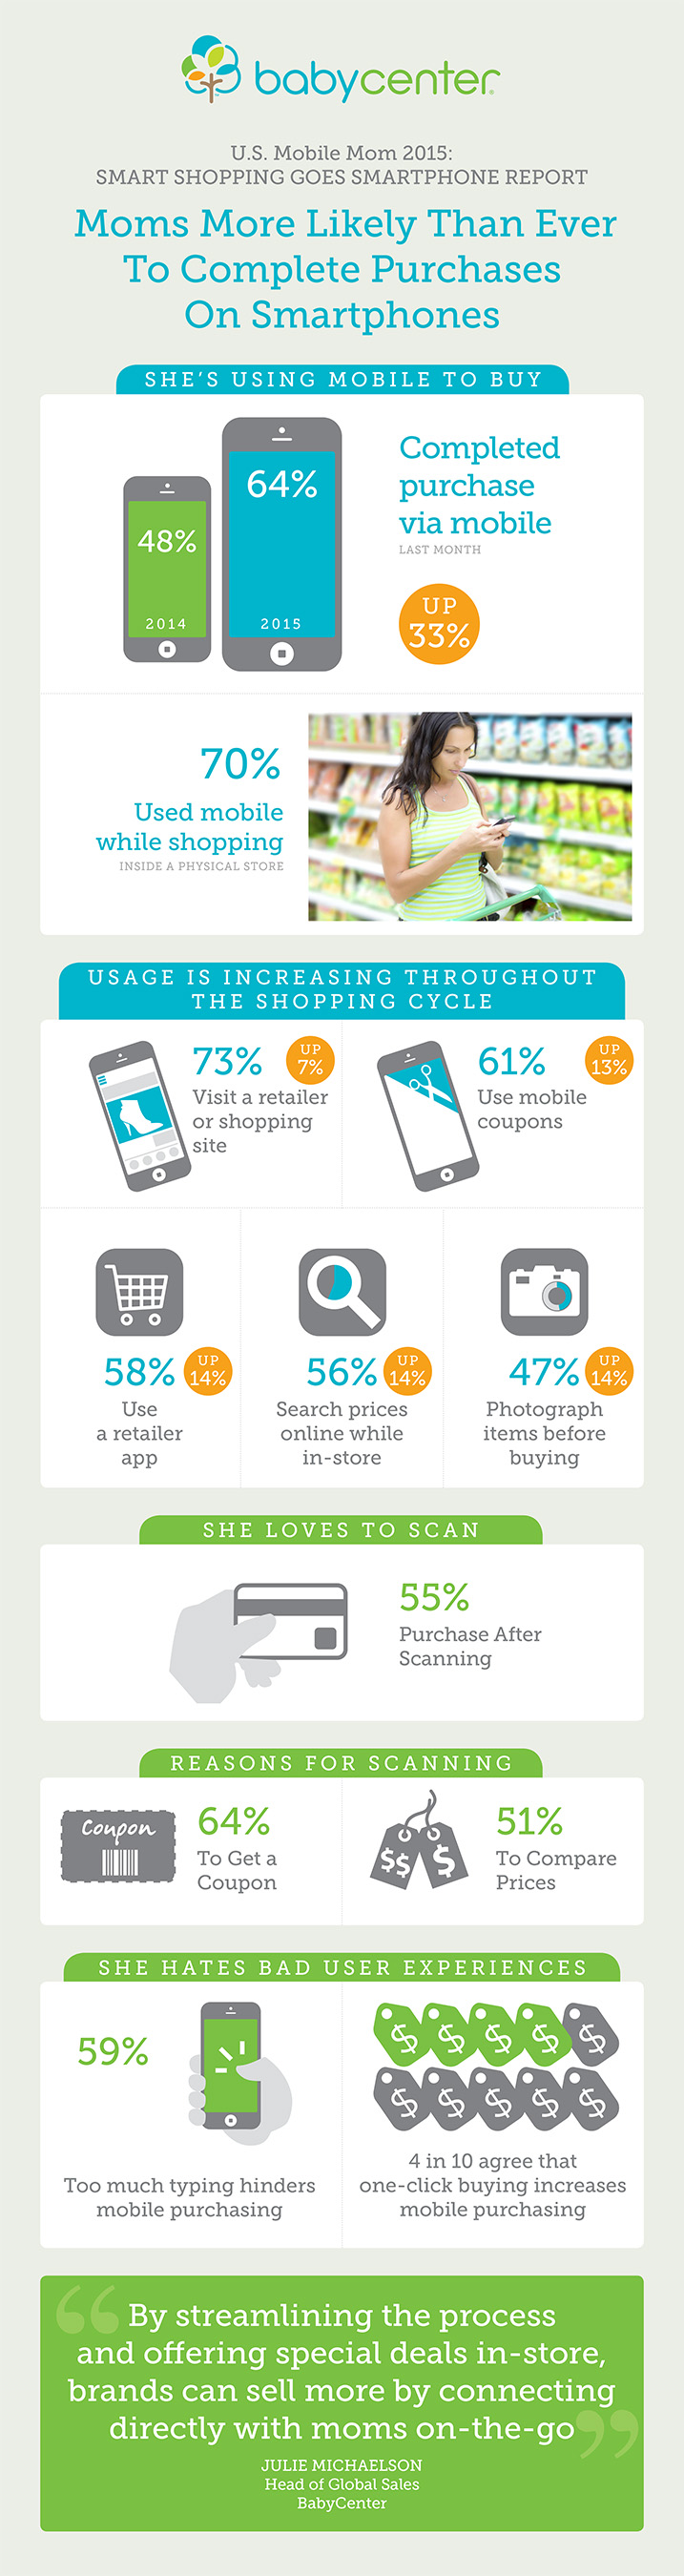 U.S. Mobile Mom 2015: SMART SHOPPING GOES SMARTPHONE REPORT